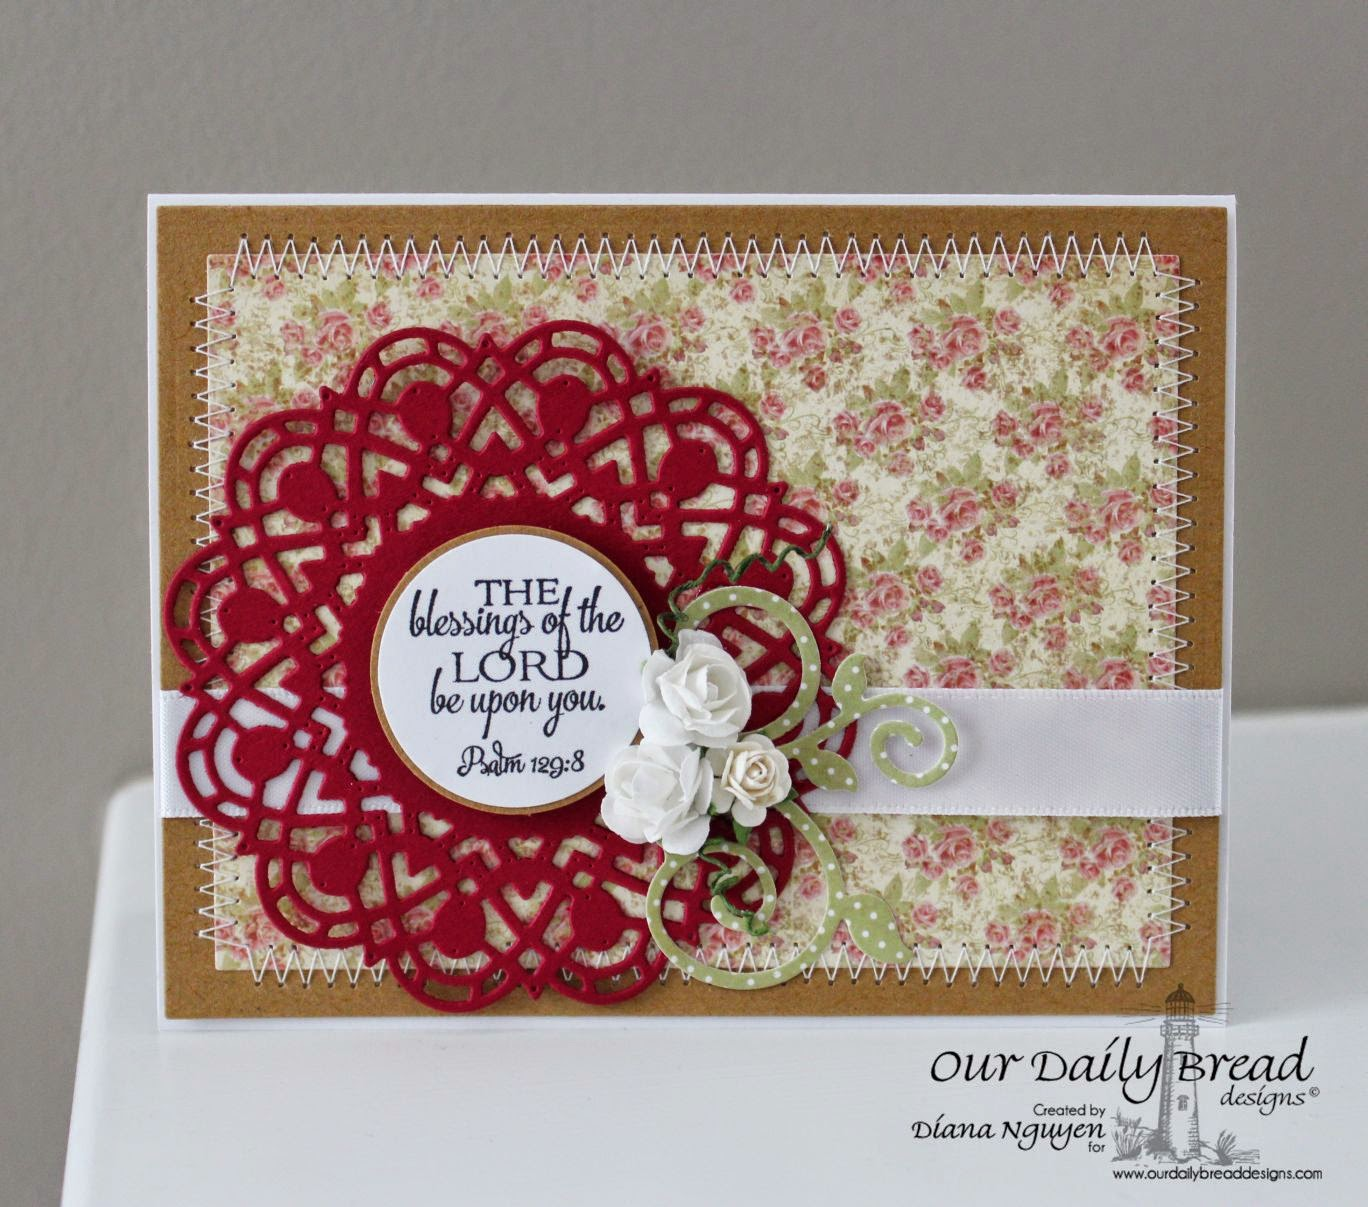 Our Daily Bread Designs, Designed by Diana Nguyen, Doily Blessings, Doily